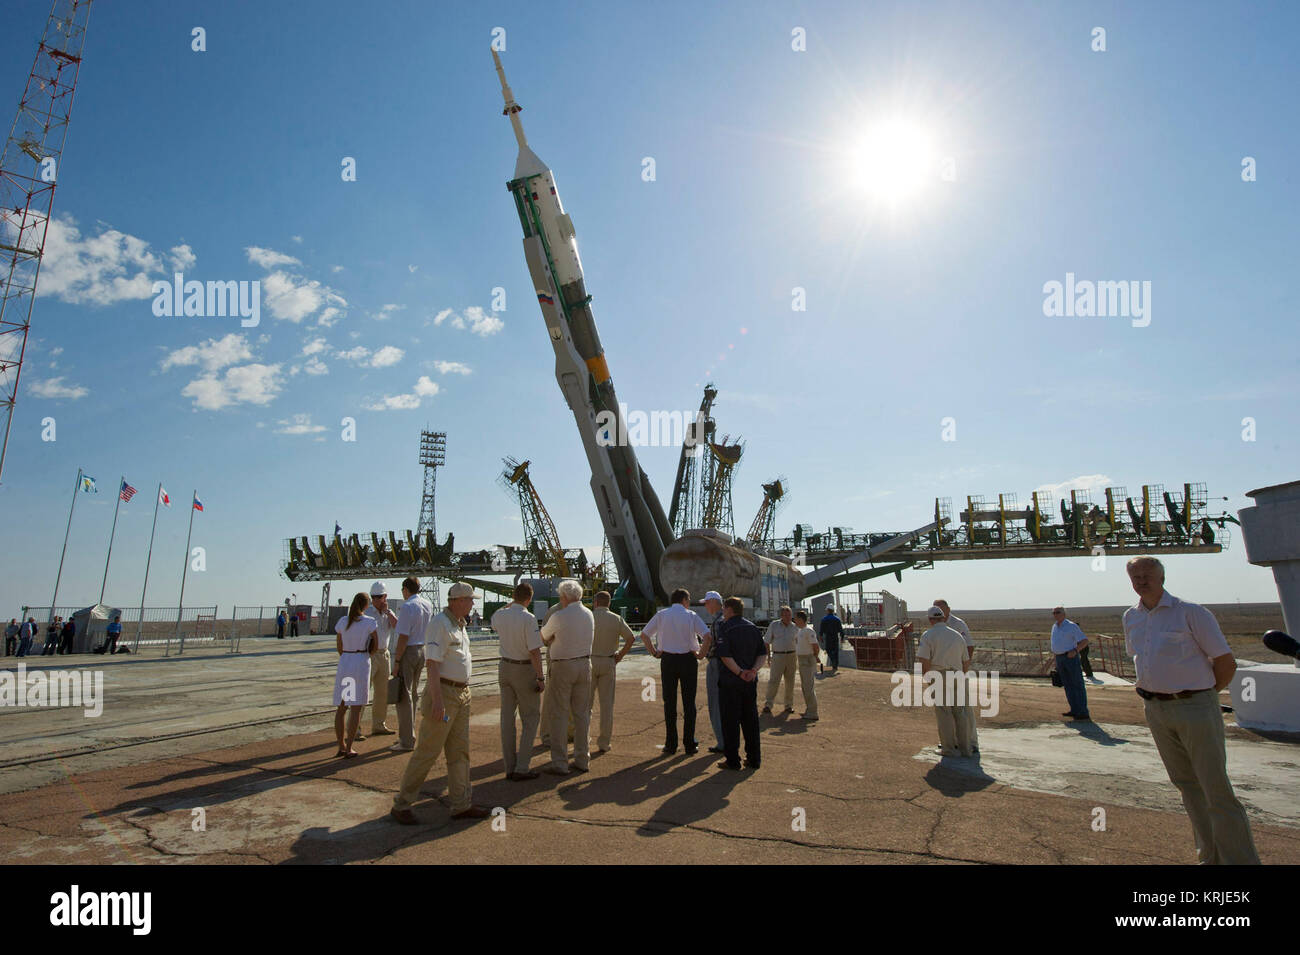 The Soyuz TMA-02M spacecraft is raised into vertical position at the launch pad at the Baikonur Cosmodrome in Kazakhstan, - Stock Image